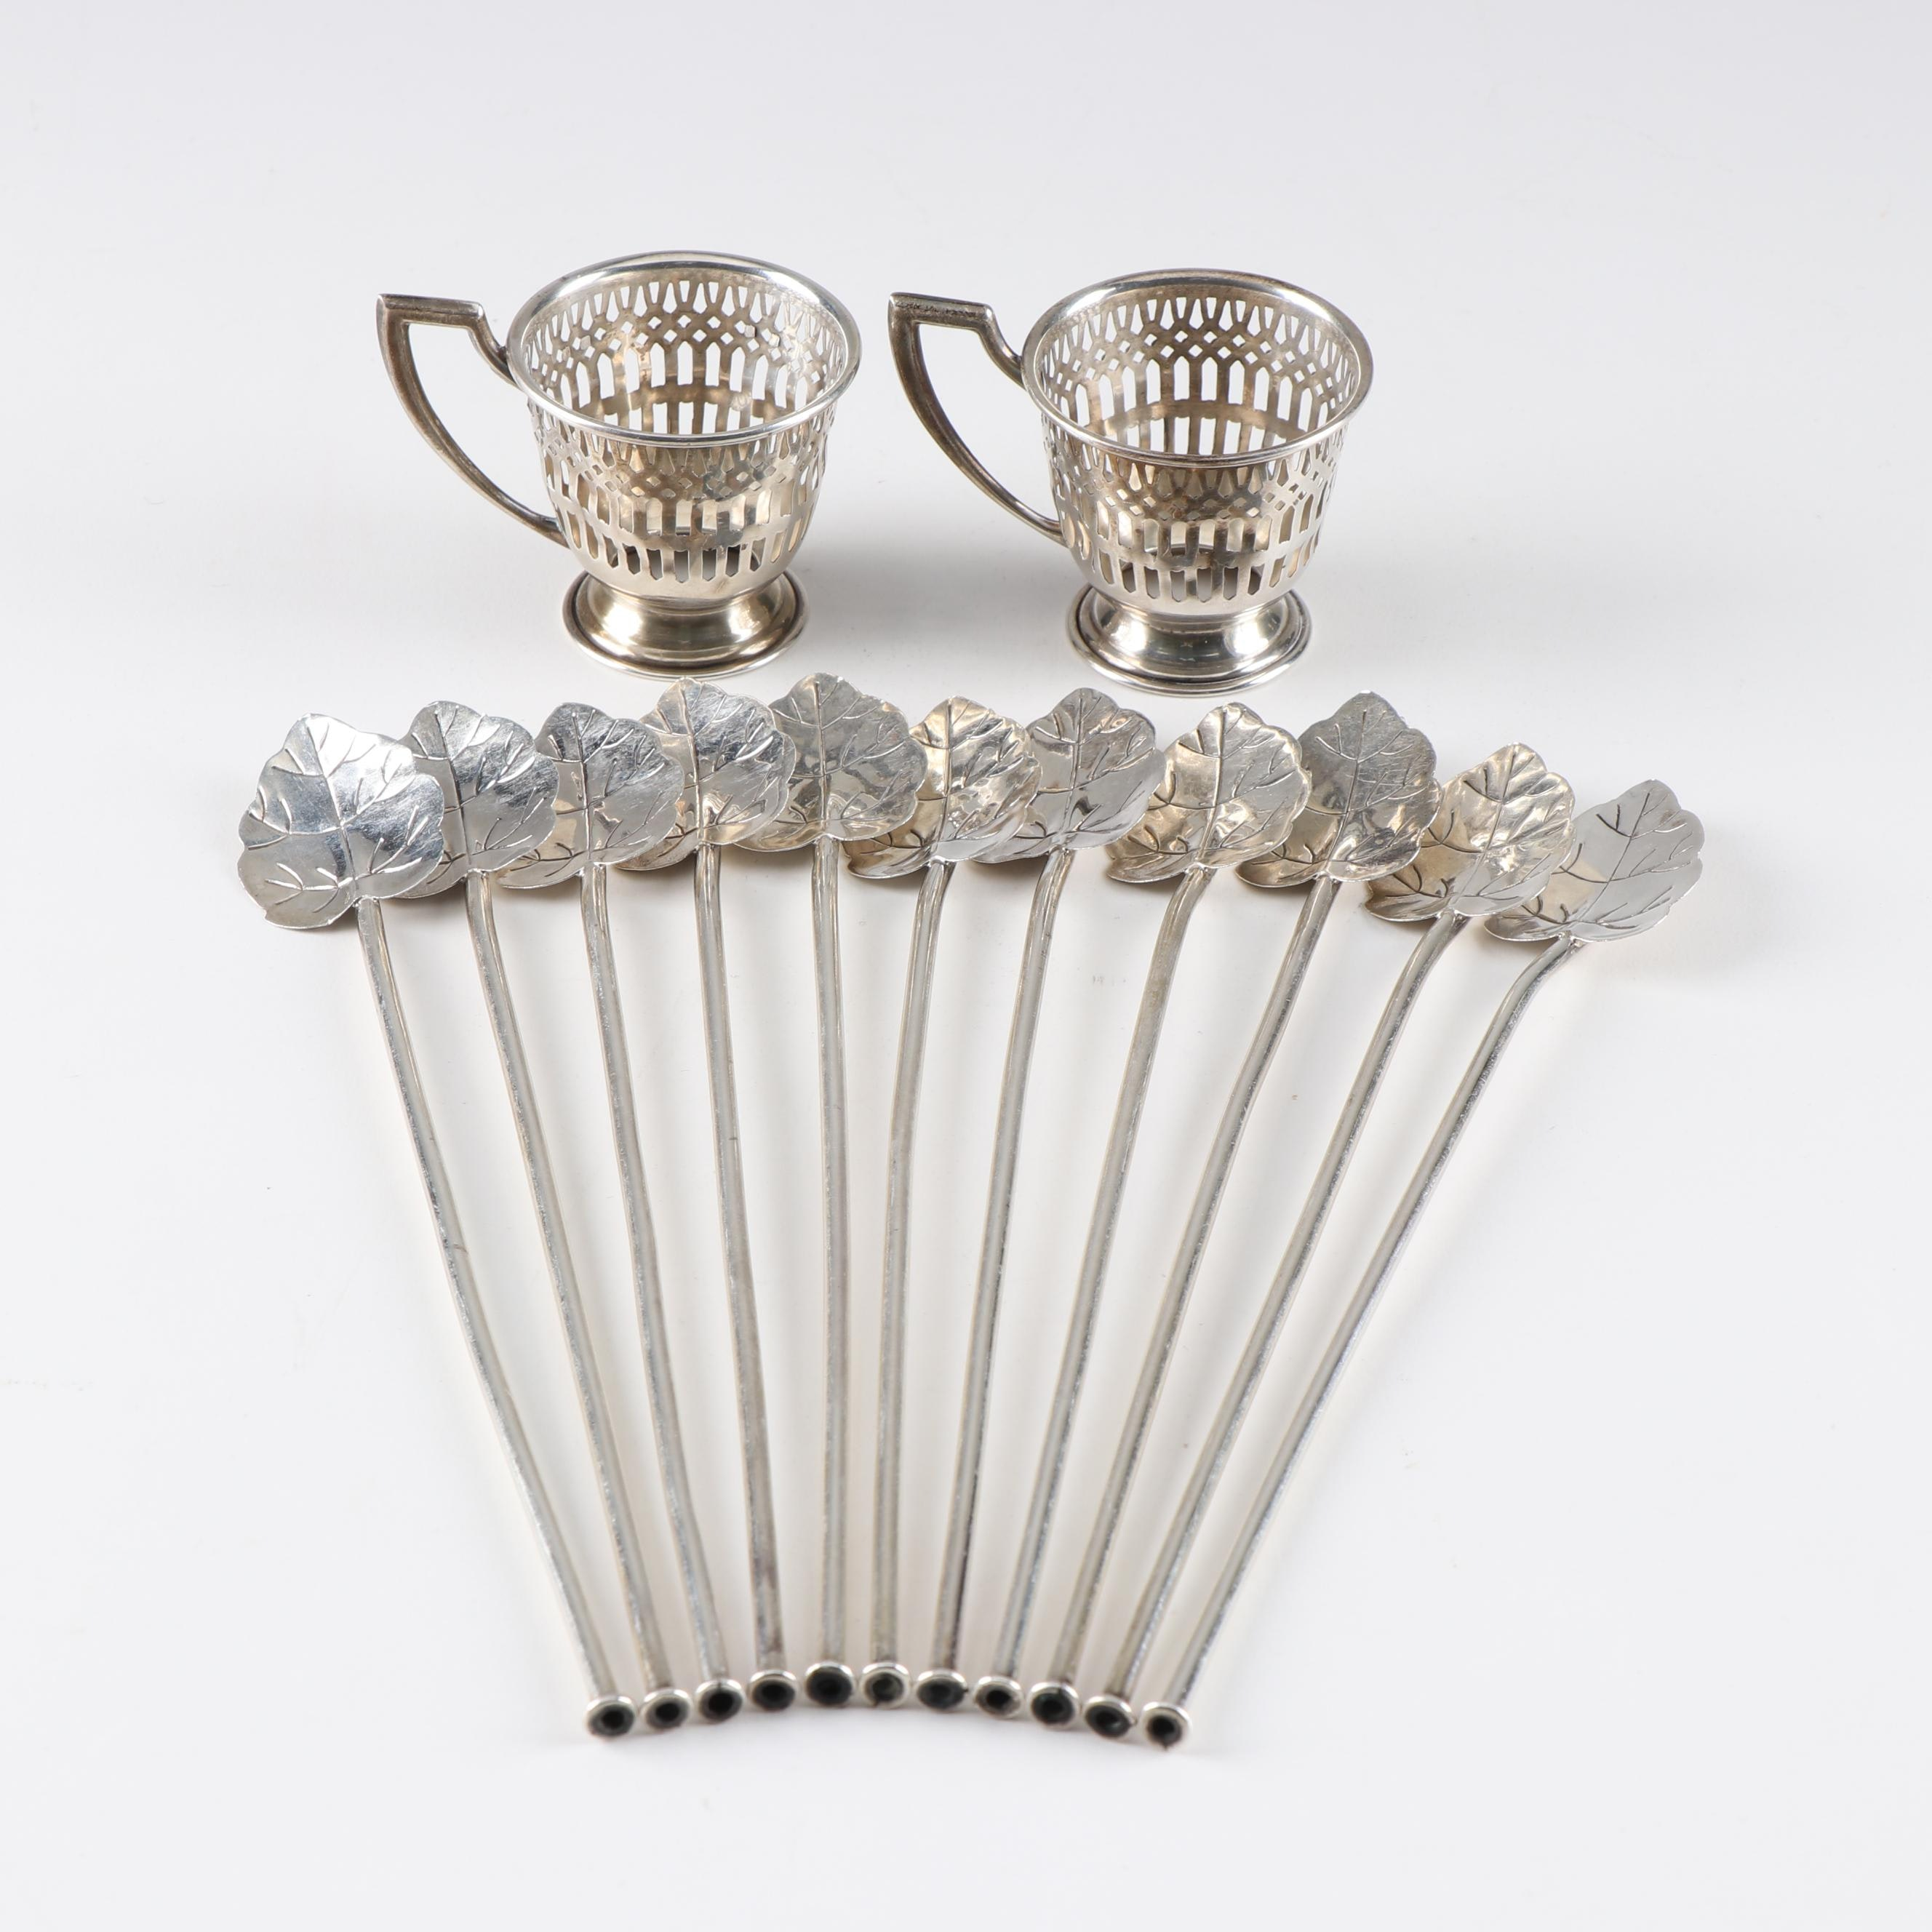 Sterling Silver Leaf Mint Julep Stirrer Straws and Demitasse Cup Holders